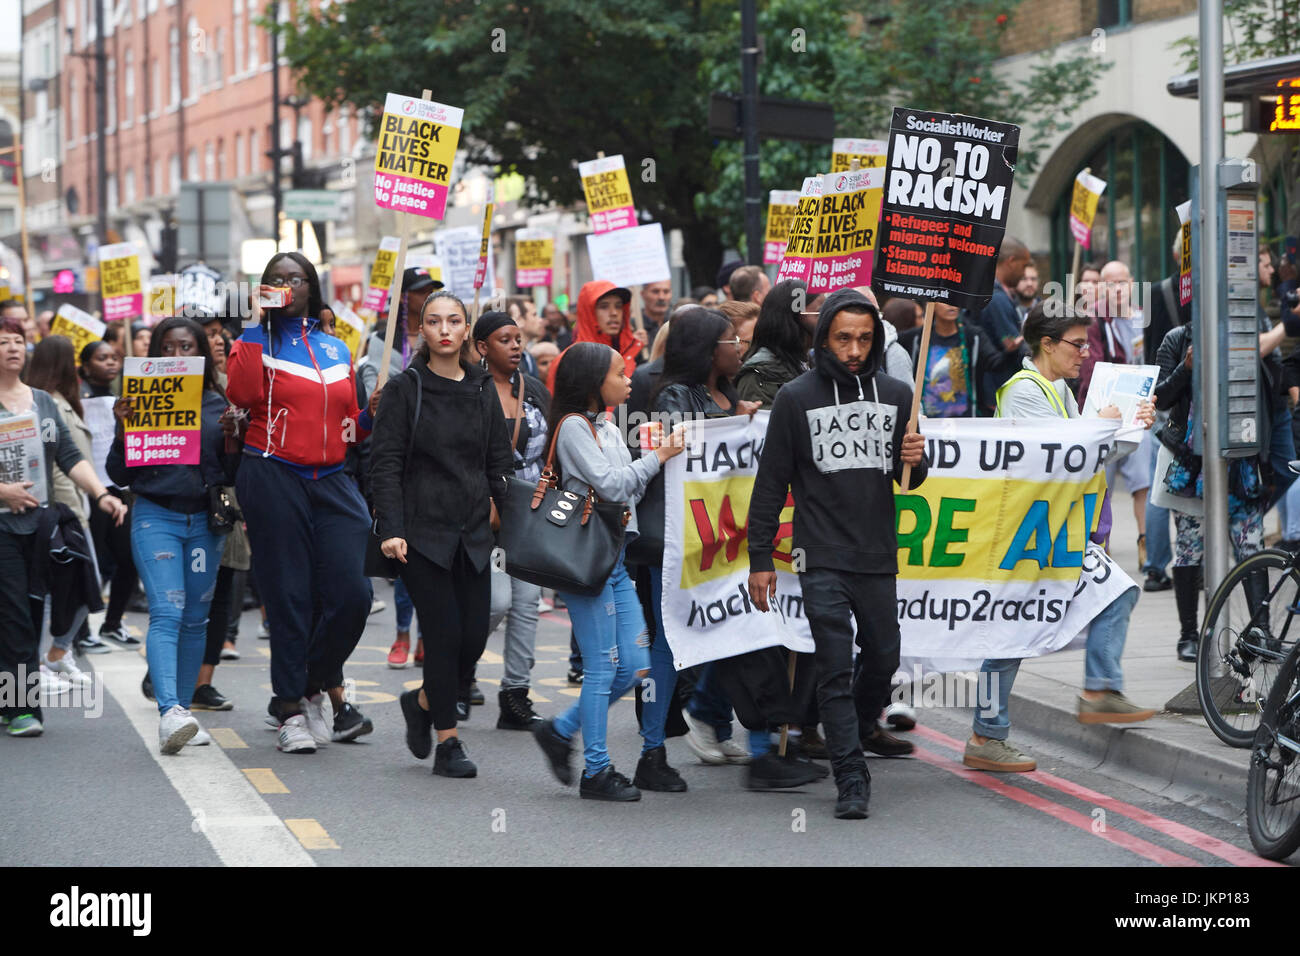 London, UK. 24th July 2017. Vigil for Rashan Charles outside Stoke newington police stationPeaceful protesters march - Stock Image